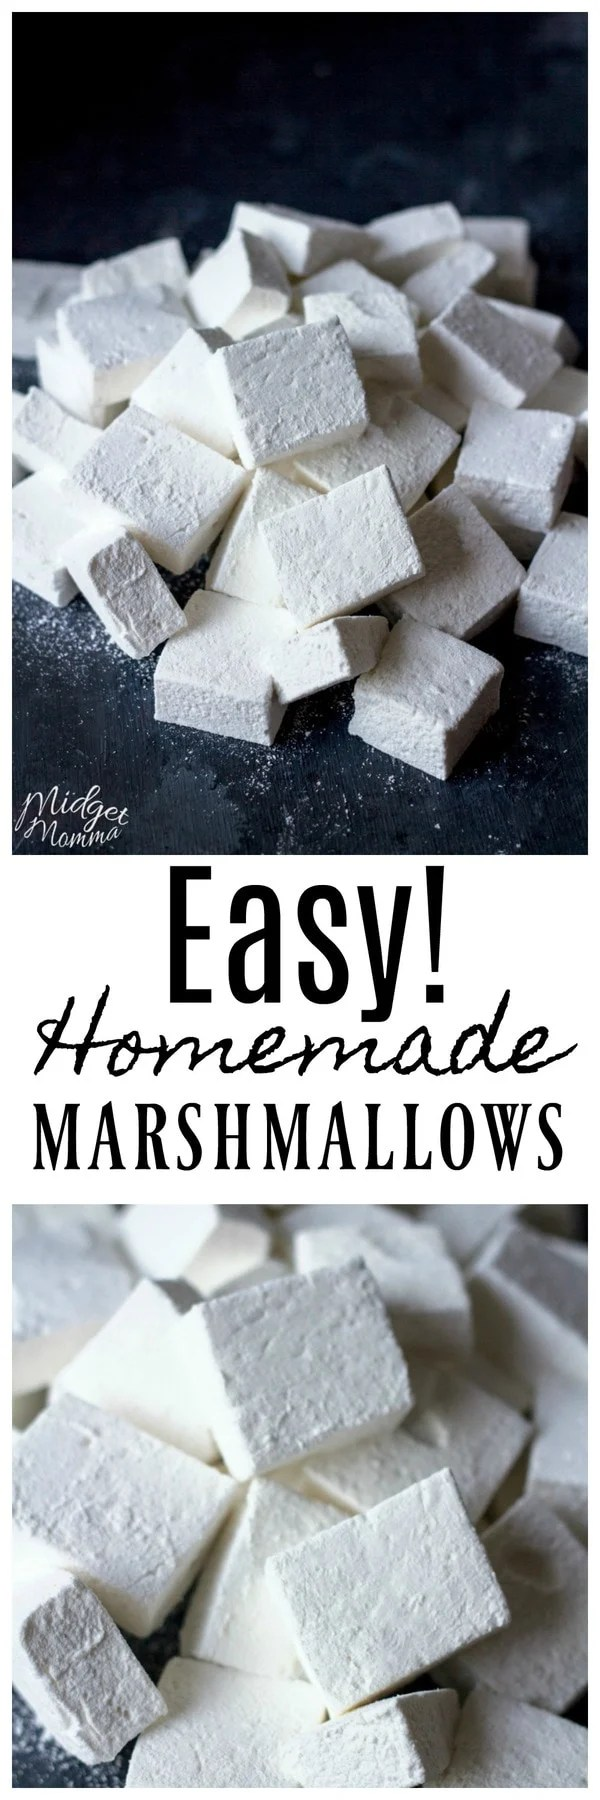 How to make Homemade Marshmallows. Step by step directions on how to make amazing marshmallows at home.